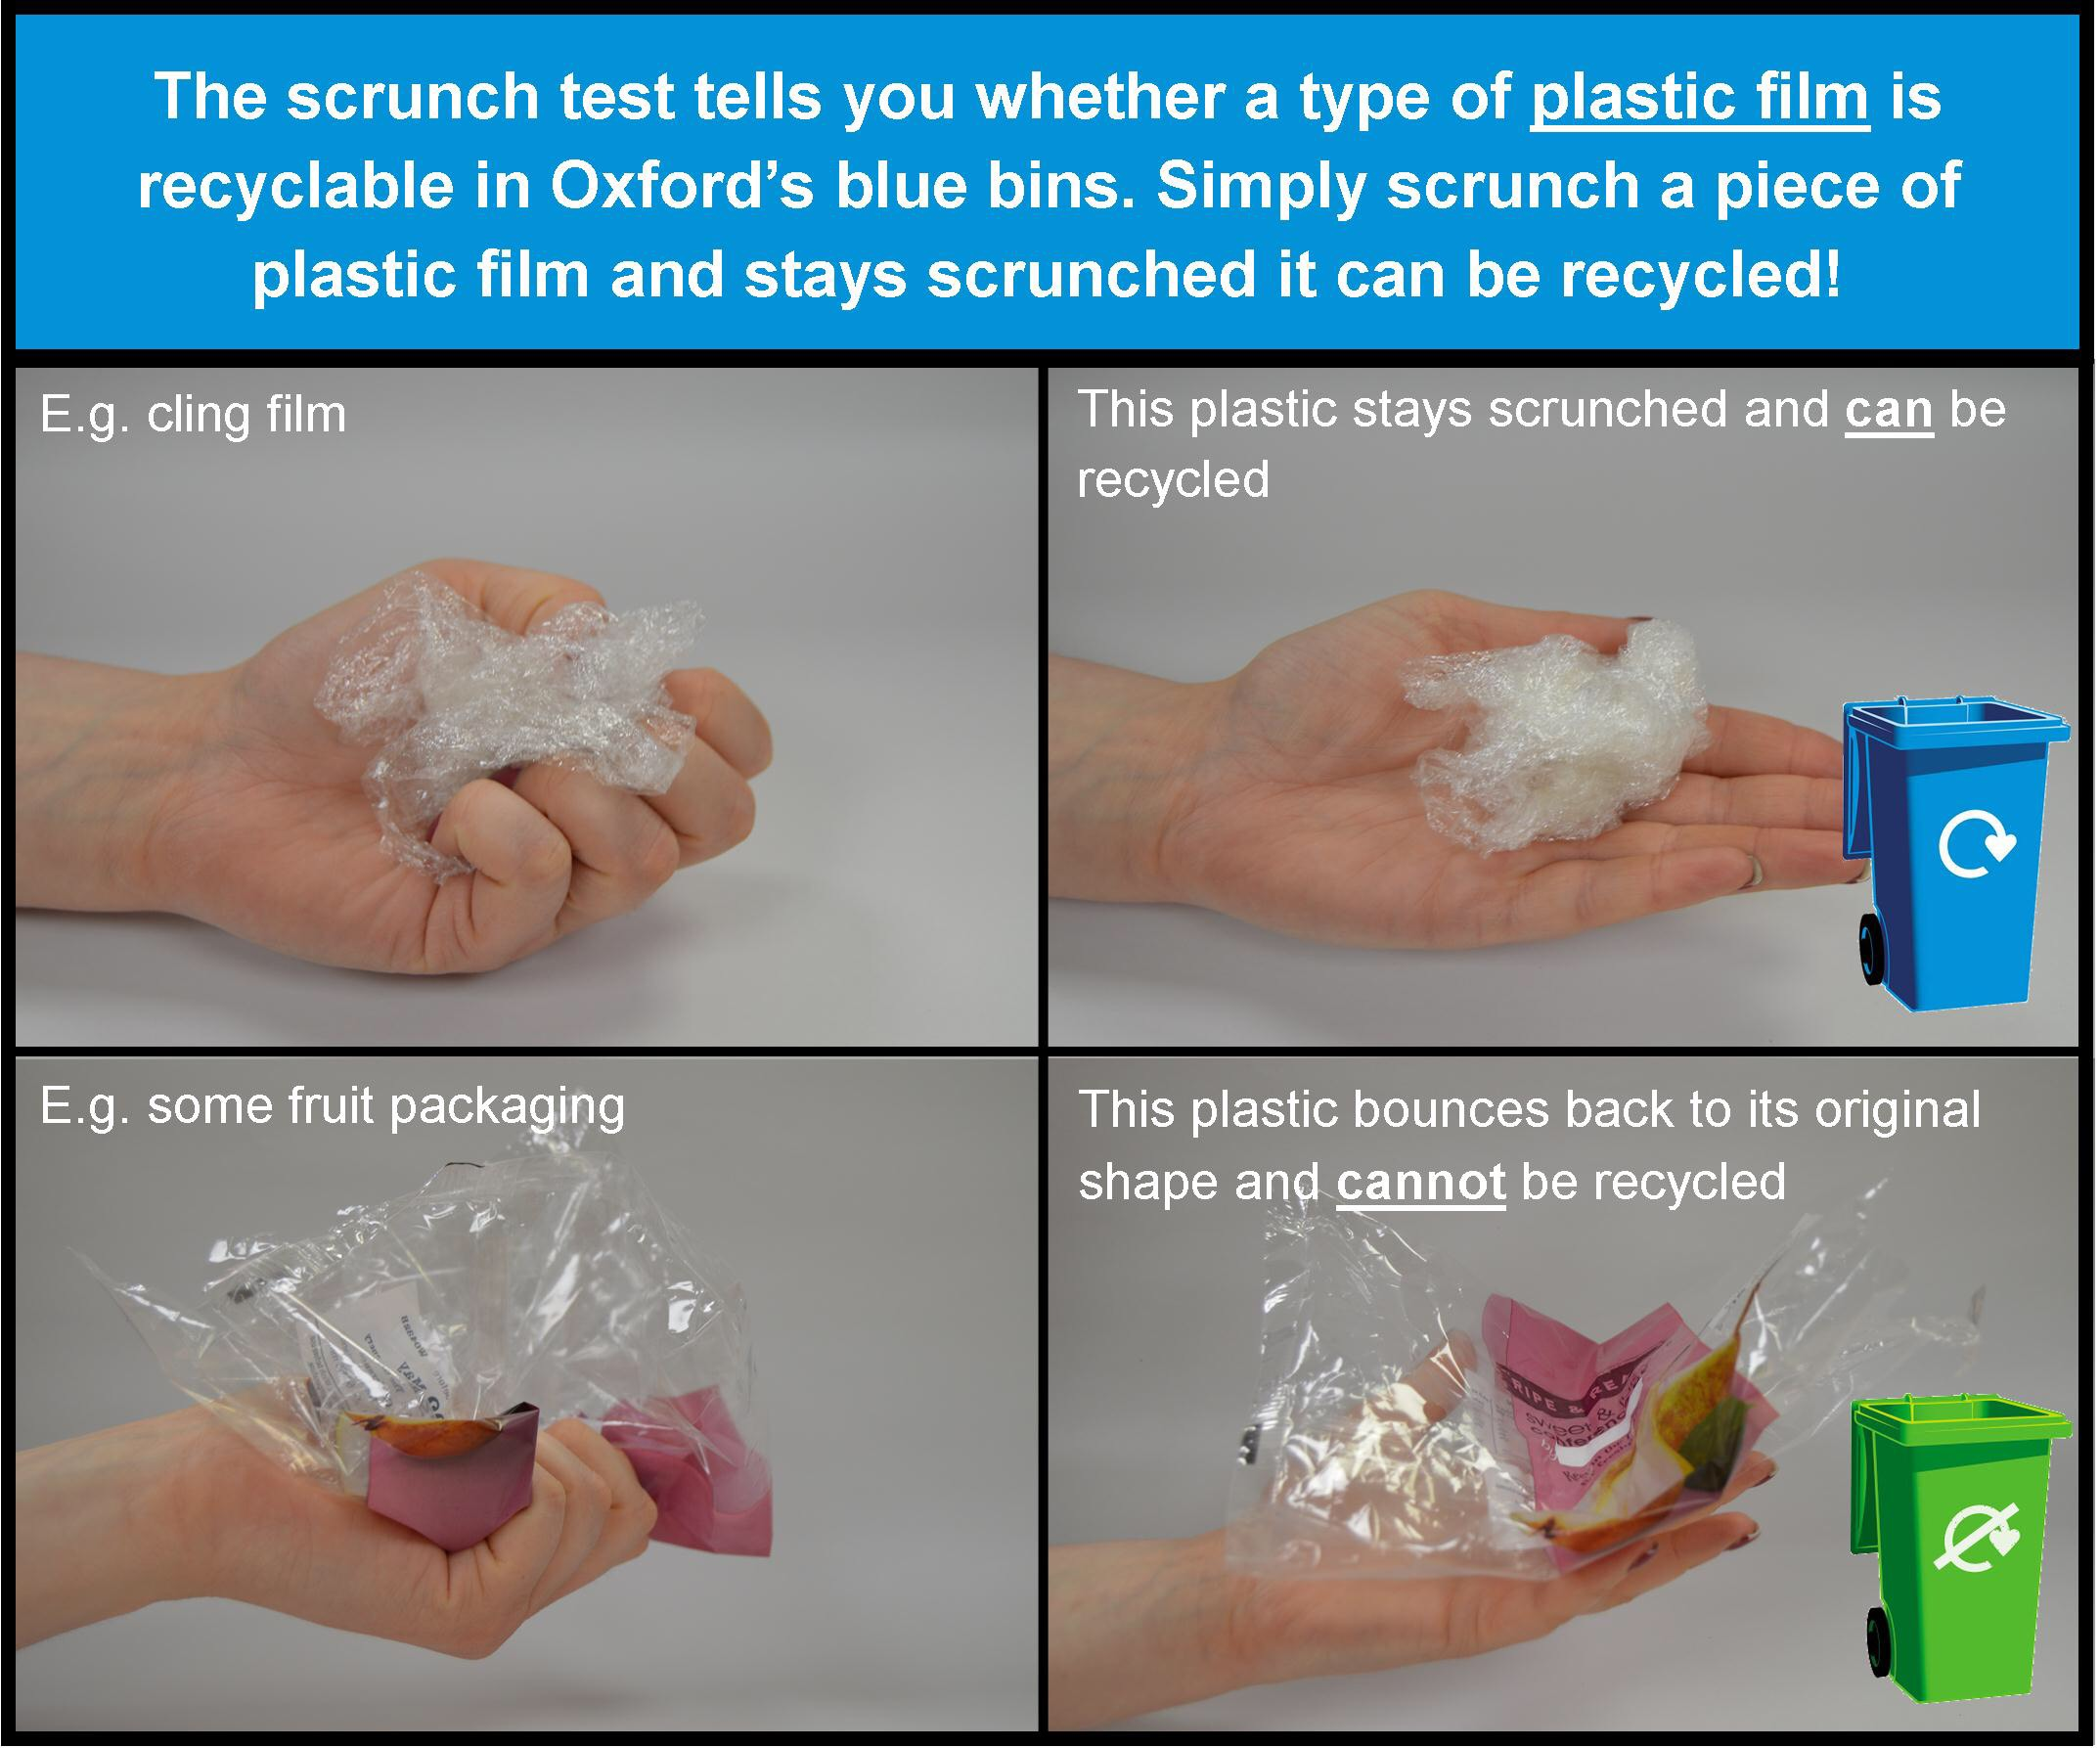 2 pictures with a hand squeezing plastic packages, one of them stays the same and other spreads out. First is recyclable.